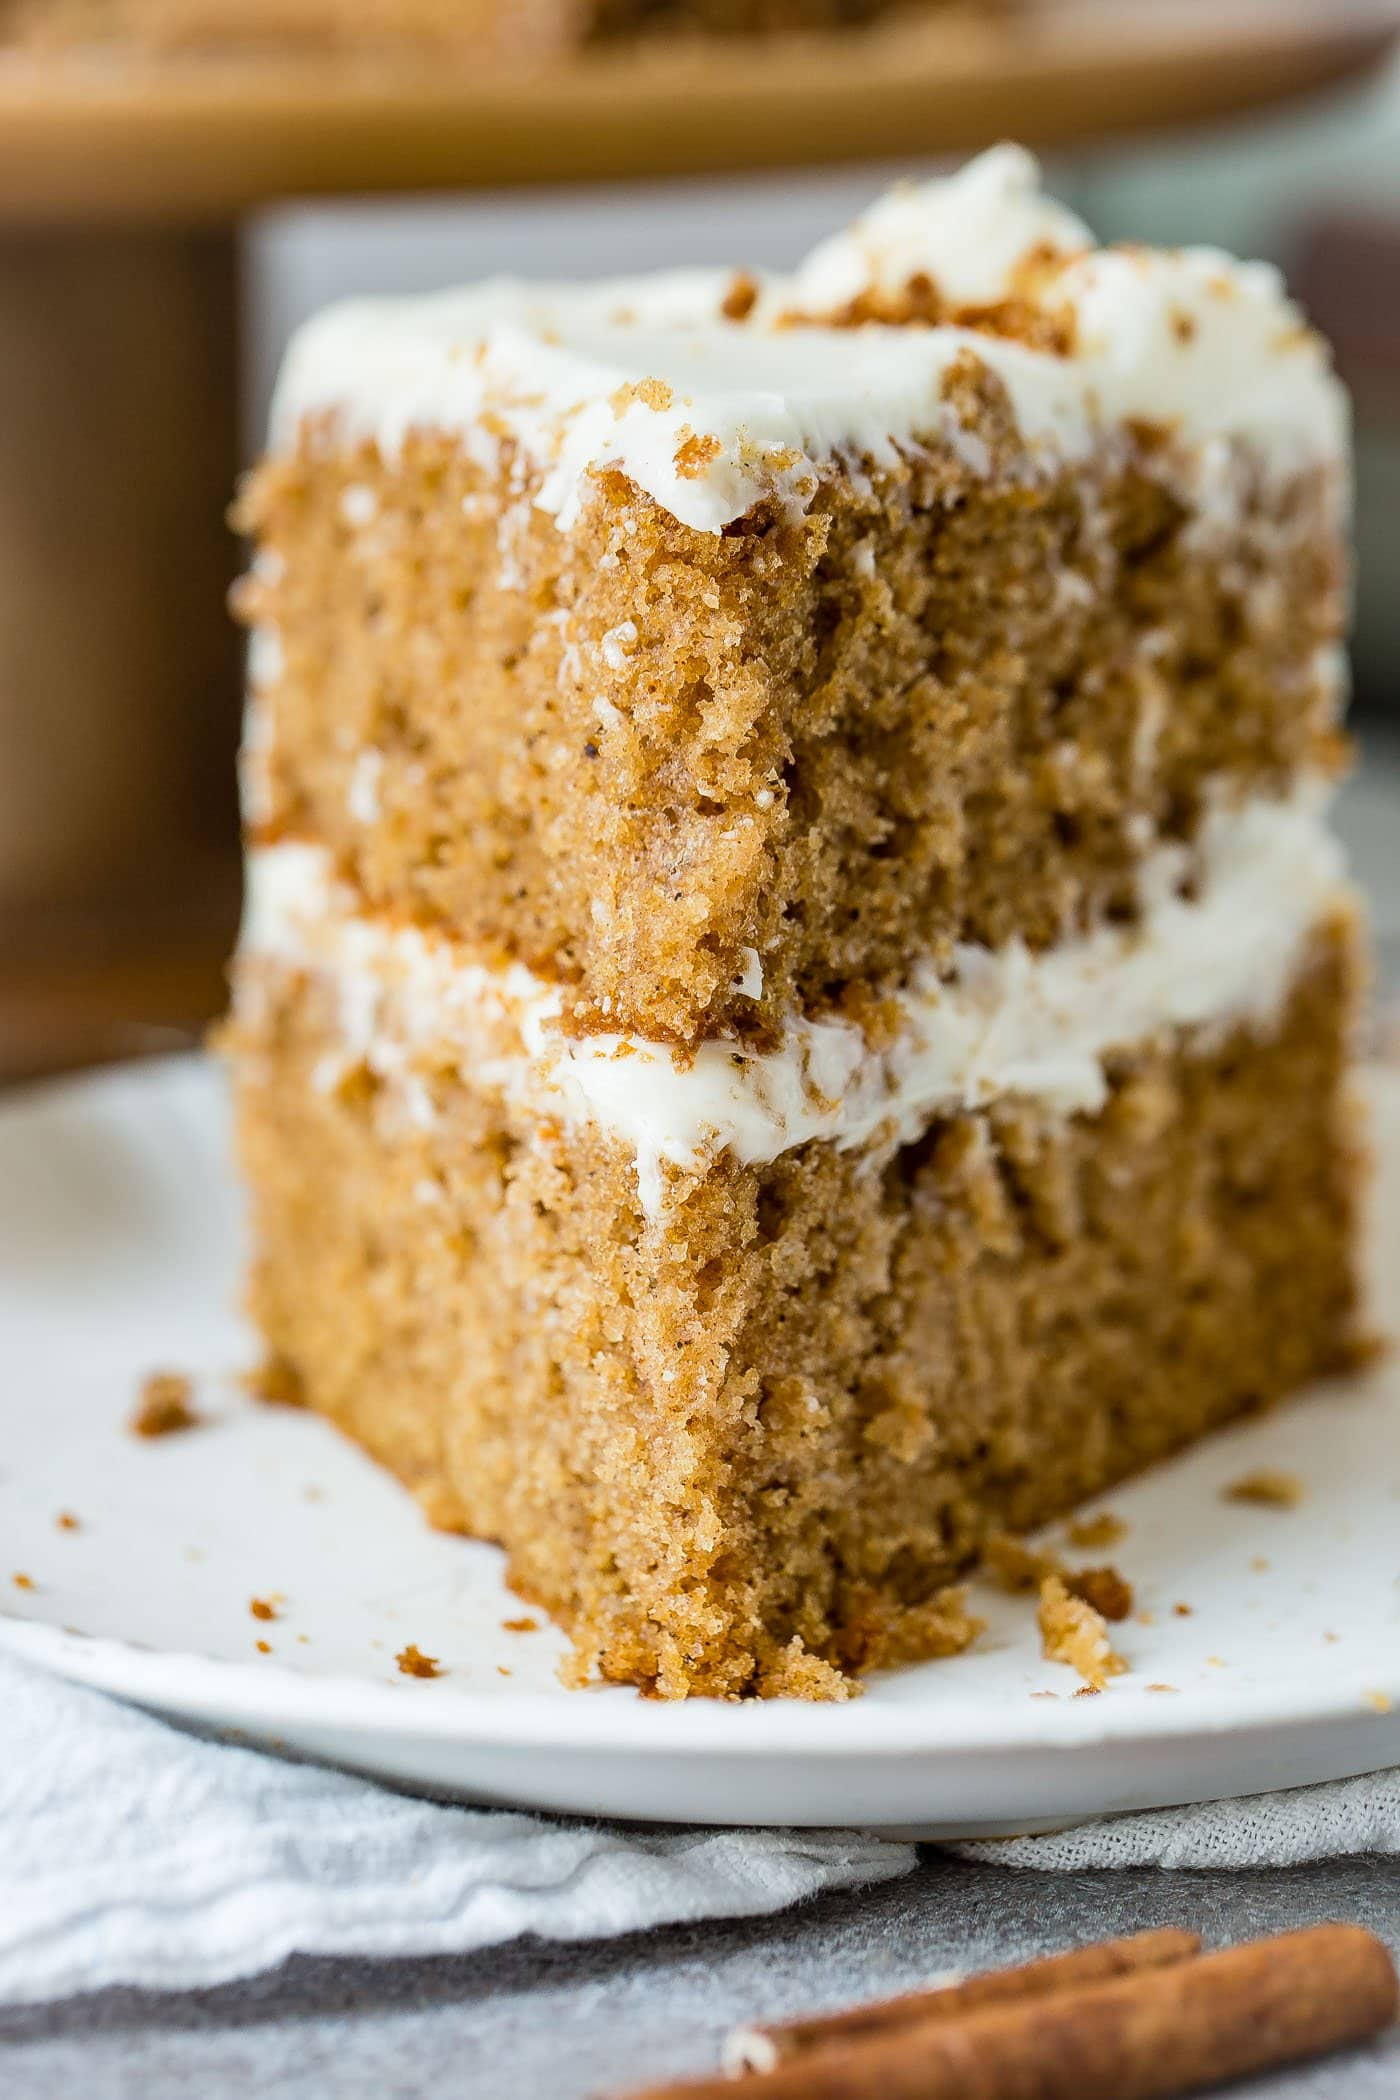 A slice of spice cake. There are two layers with cream cheese frosting between the layers and on top of the cake.